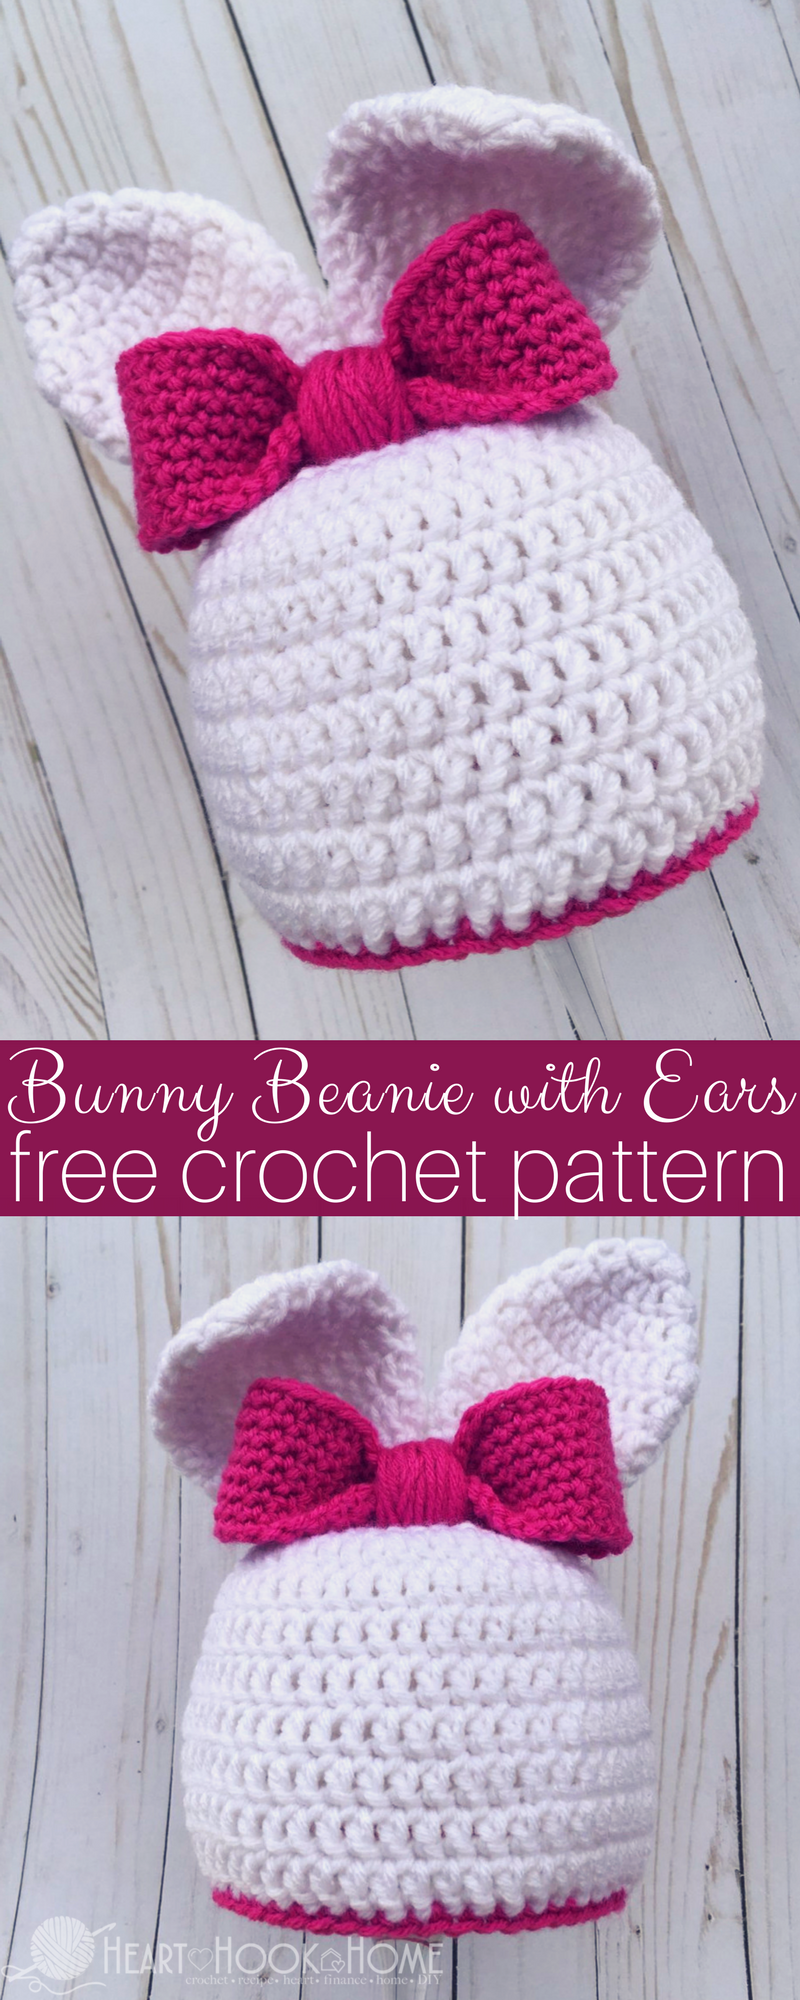 Perfect for easter free bunny beanie with ears crochet pattern perfect for easter free bunny beanie with ears crochet pattern bankloansurffo Gallery